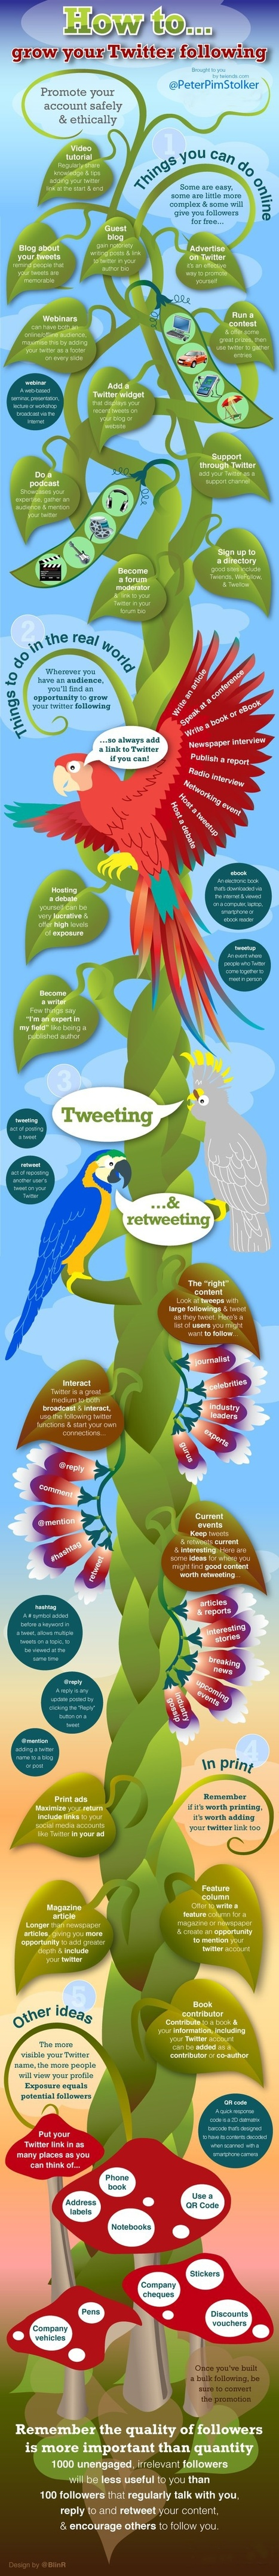 How to get more followers on twitter | AtDotCom Social media | Scoop.it